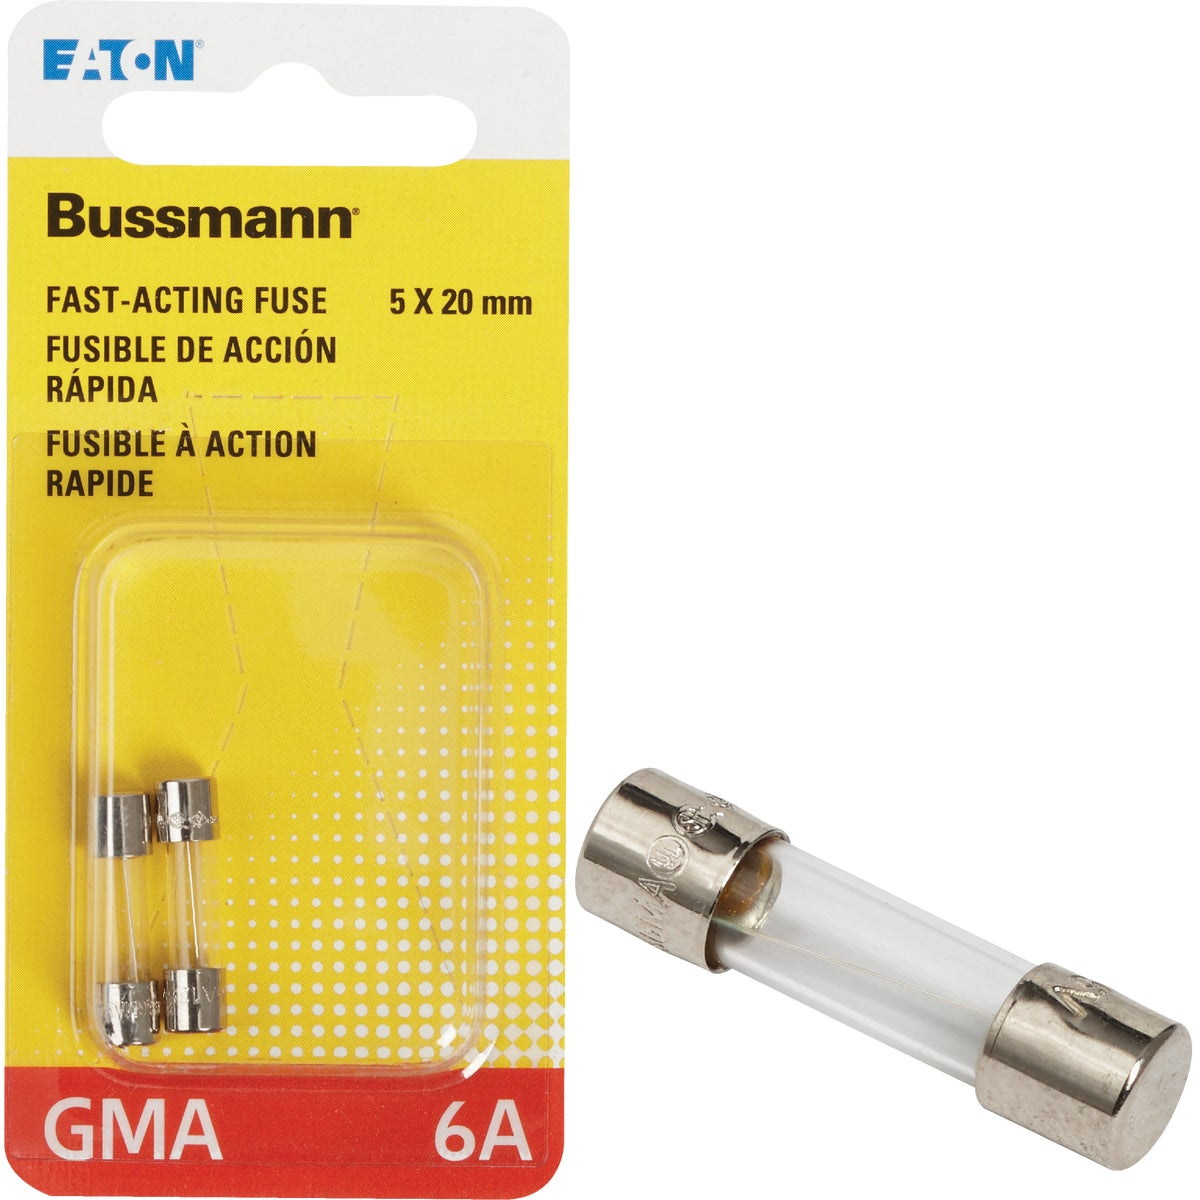 6A FAST ACTING FUSE